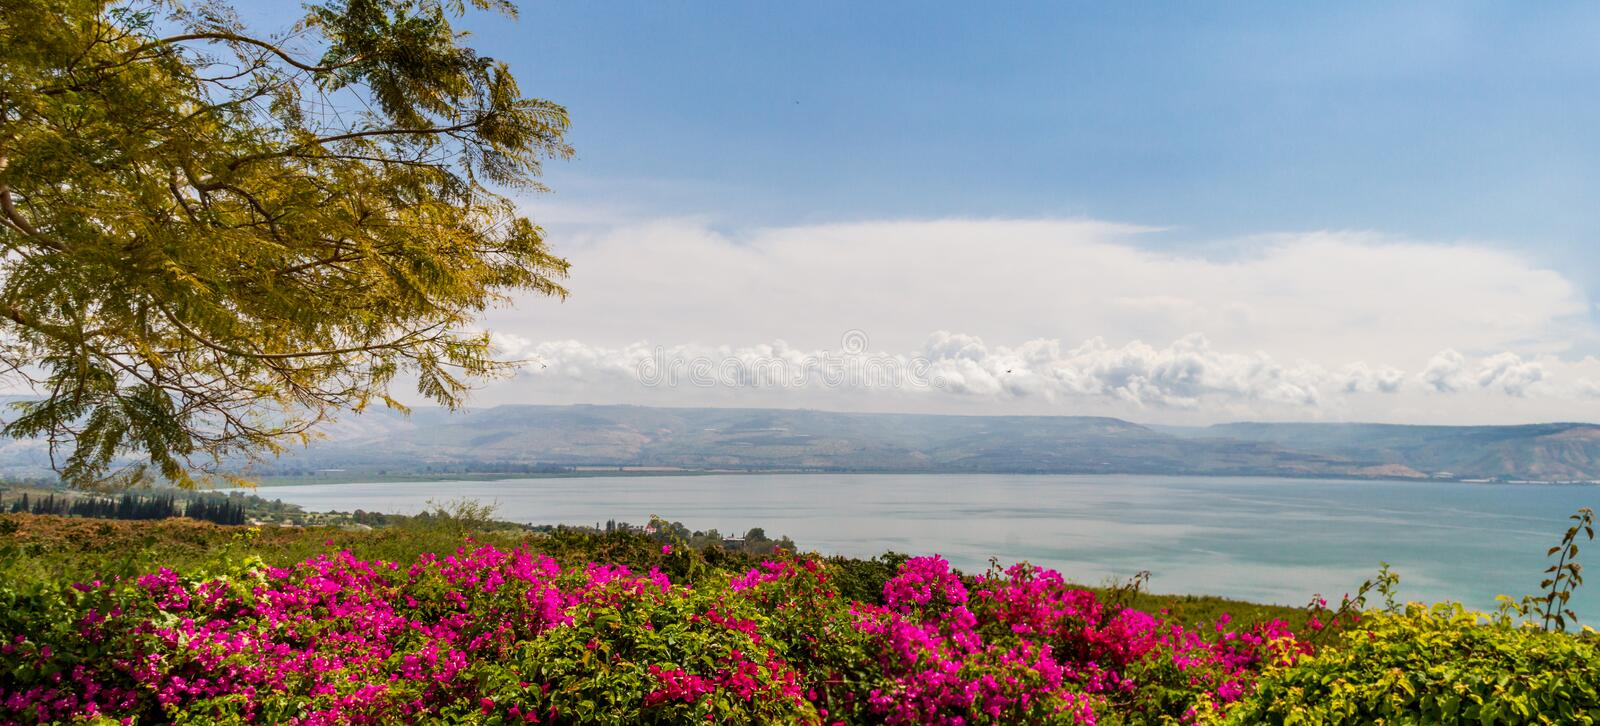 Panoramic top view of the sea of Galilee from the Mount of Beatitudes, Israel stock photo